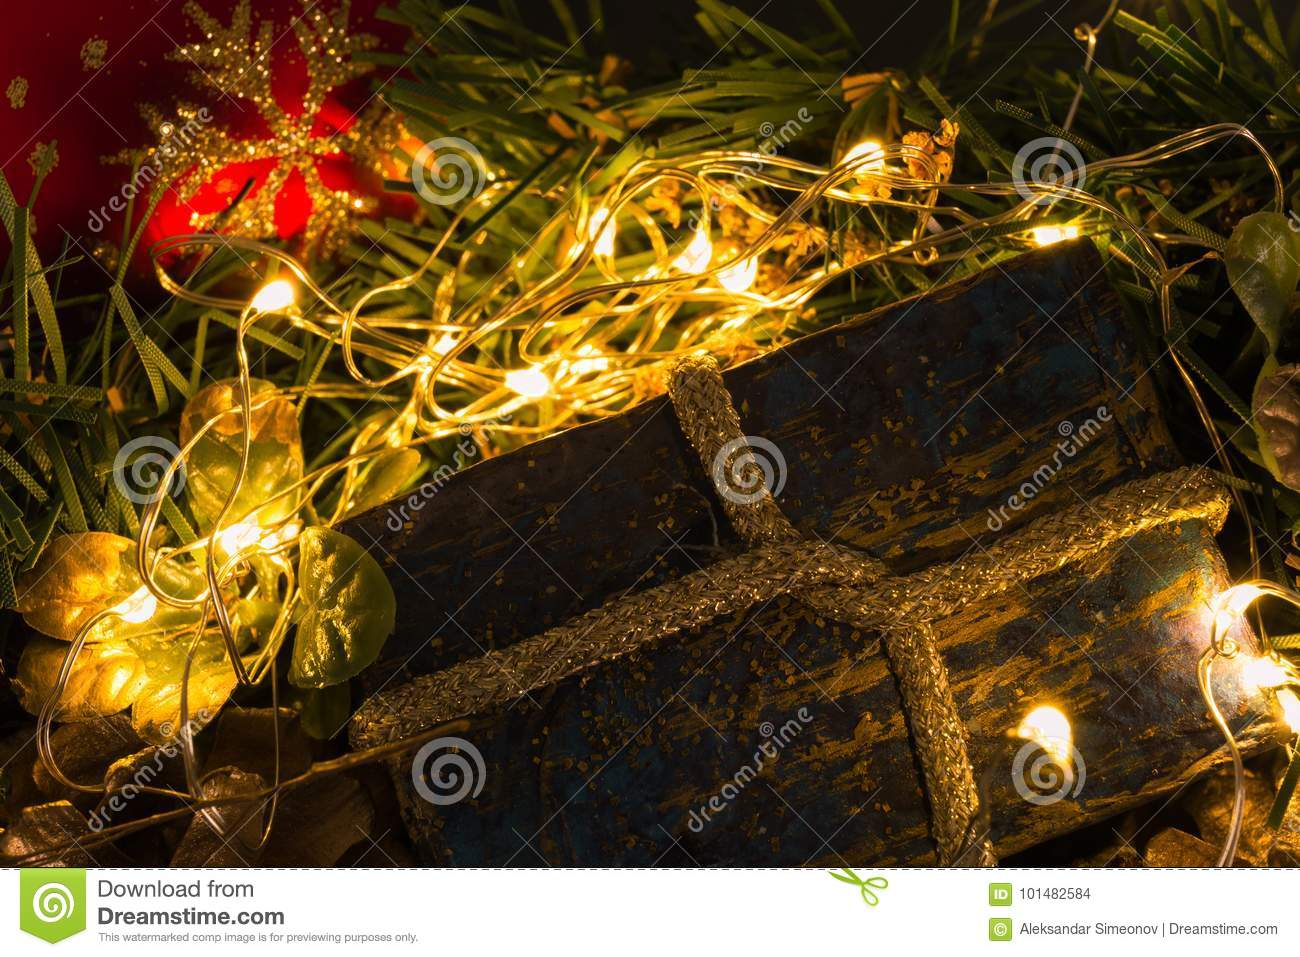 download christmas present on abstract blurry background stock photo image of sparkle abstract